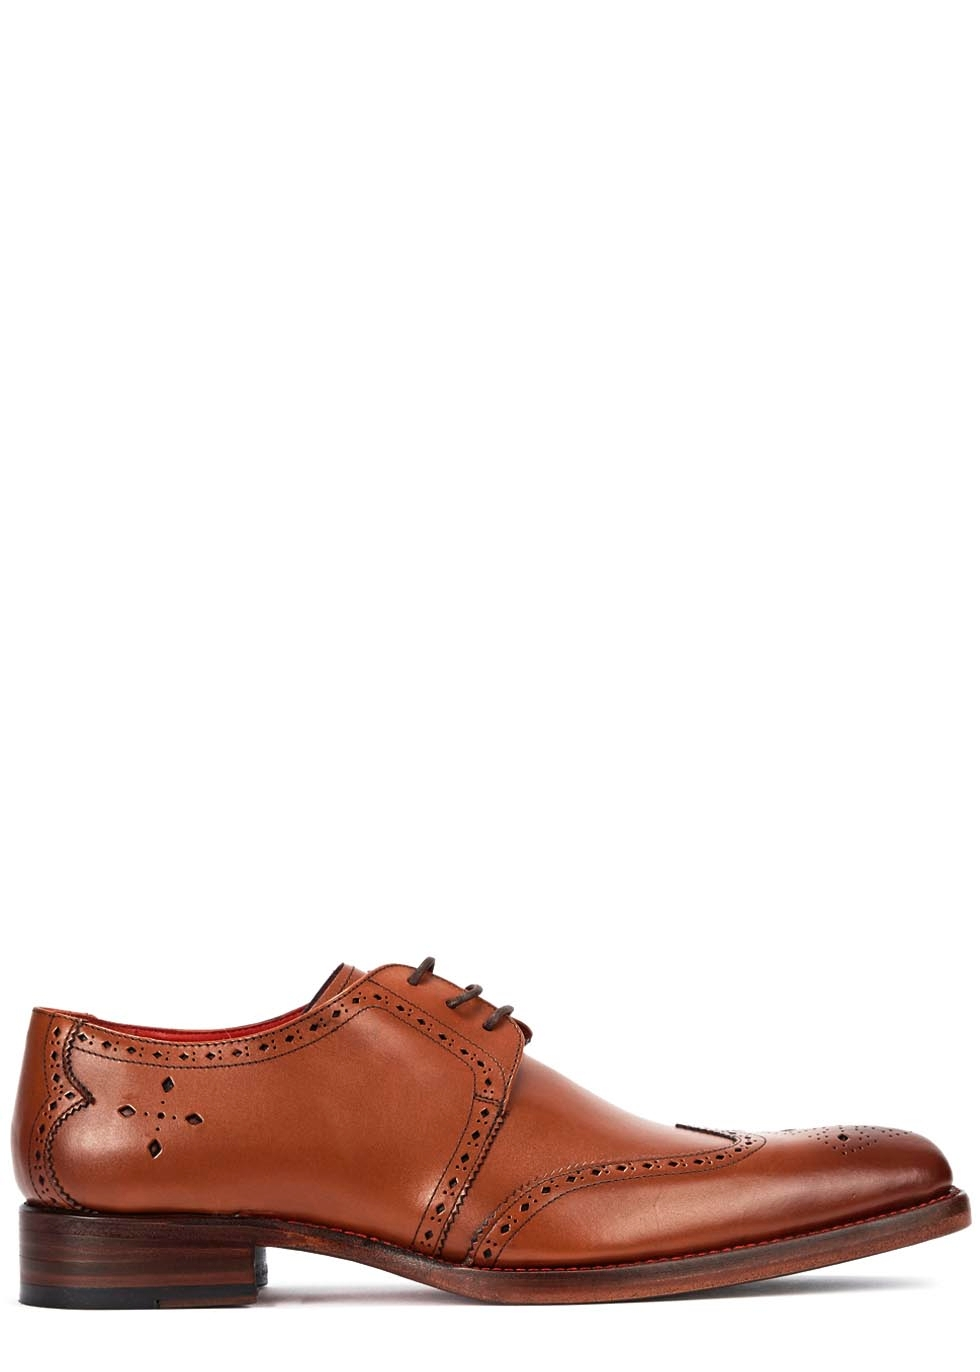 JEFFERY WEST Bay Brown Leather Brogues in Tan